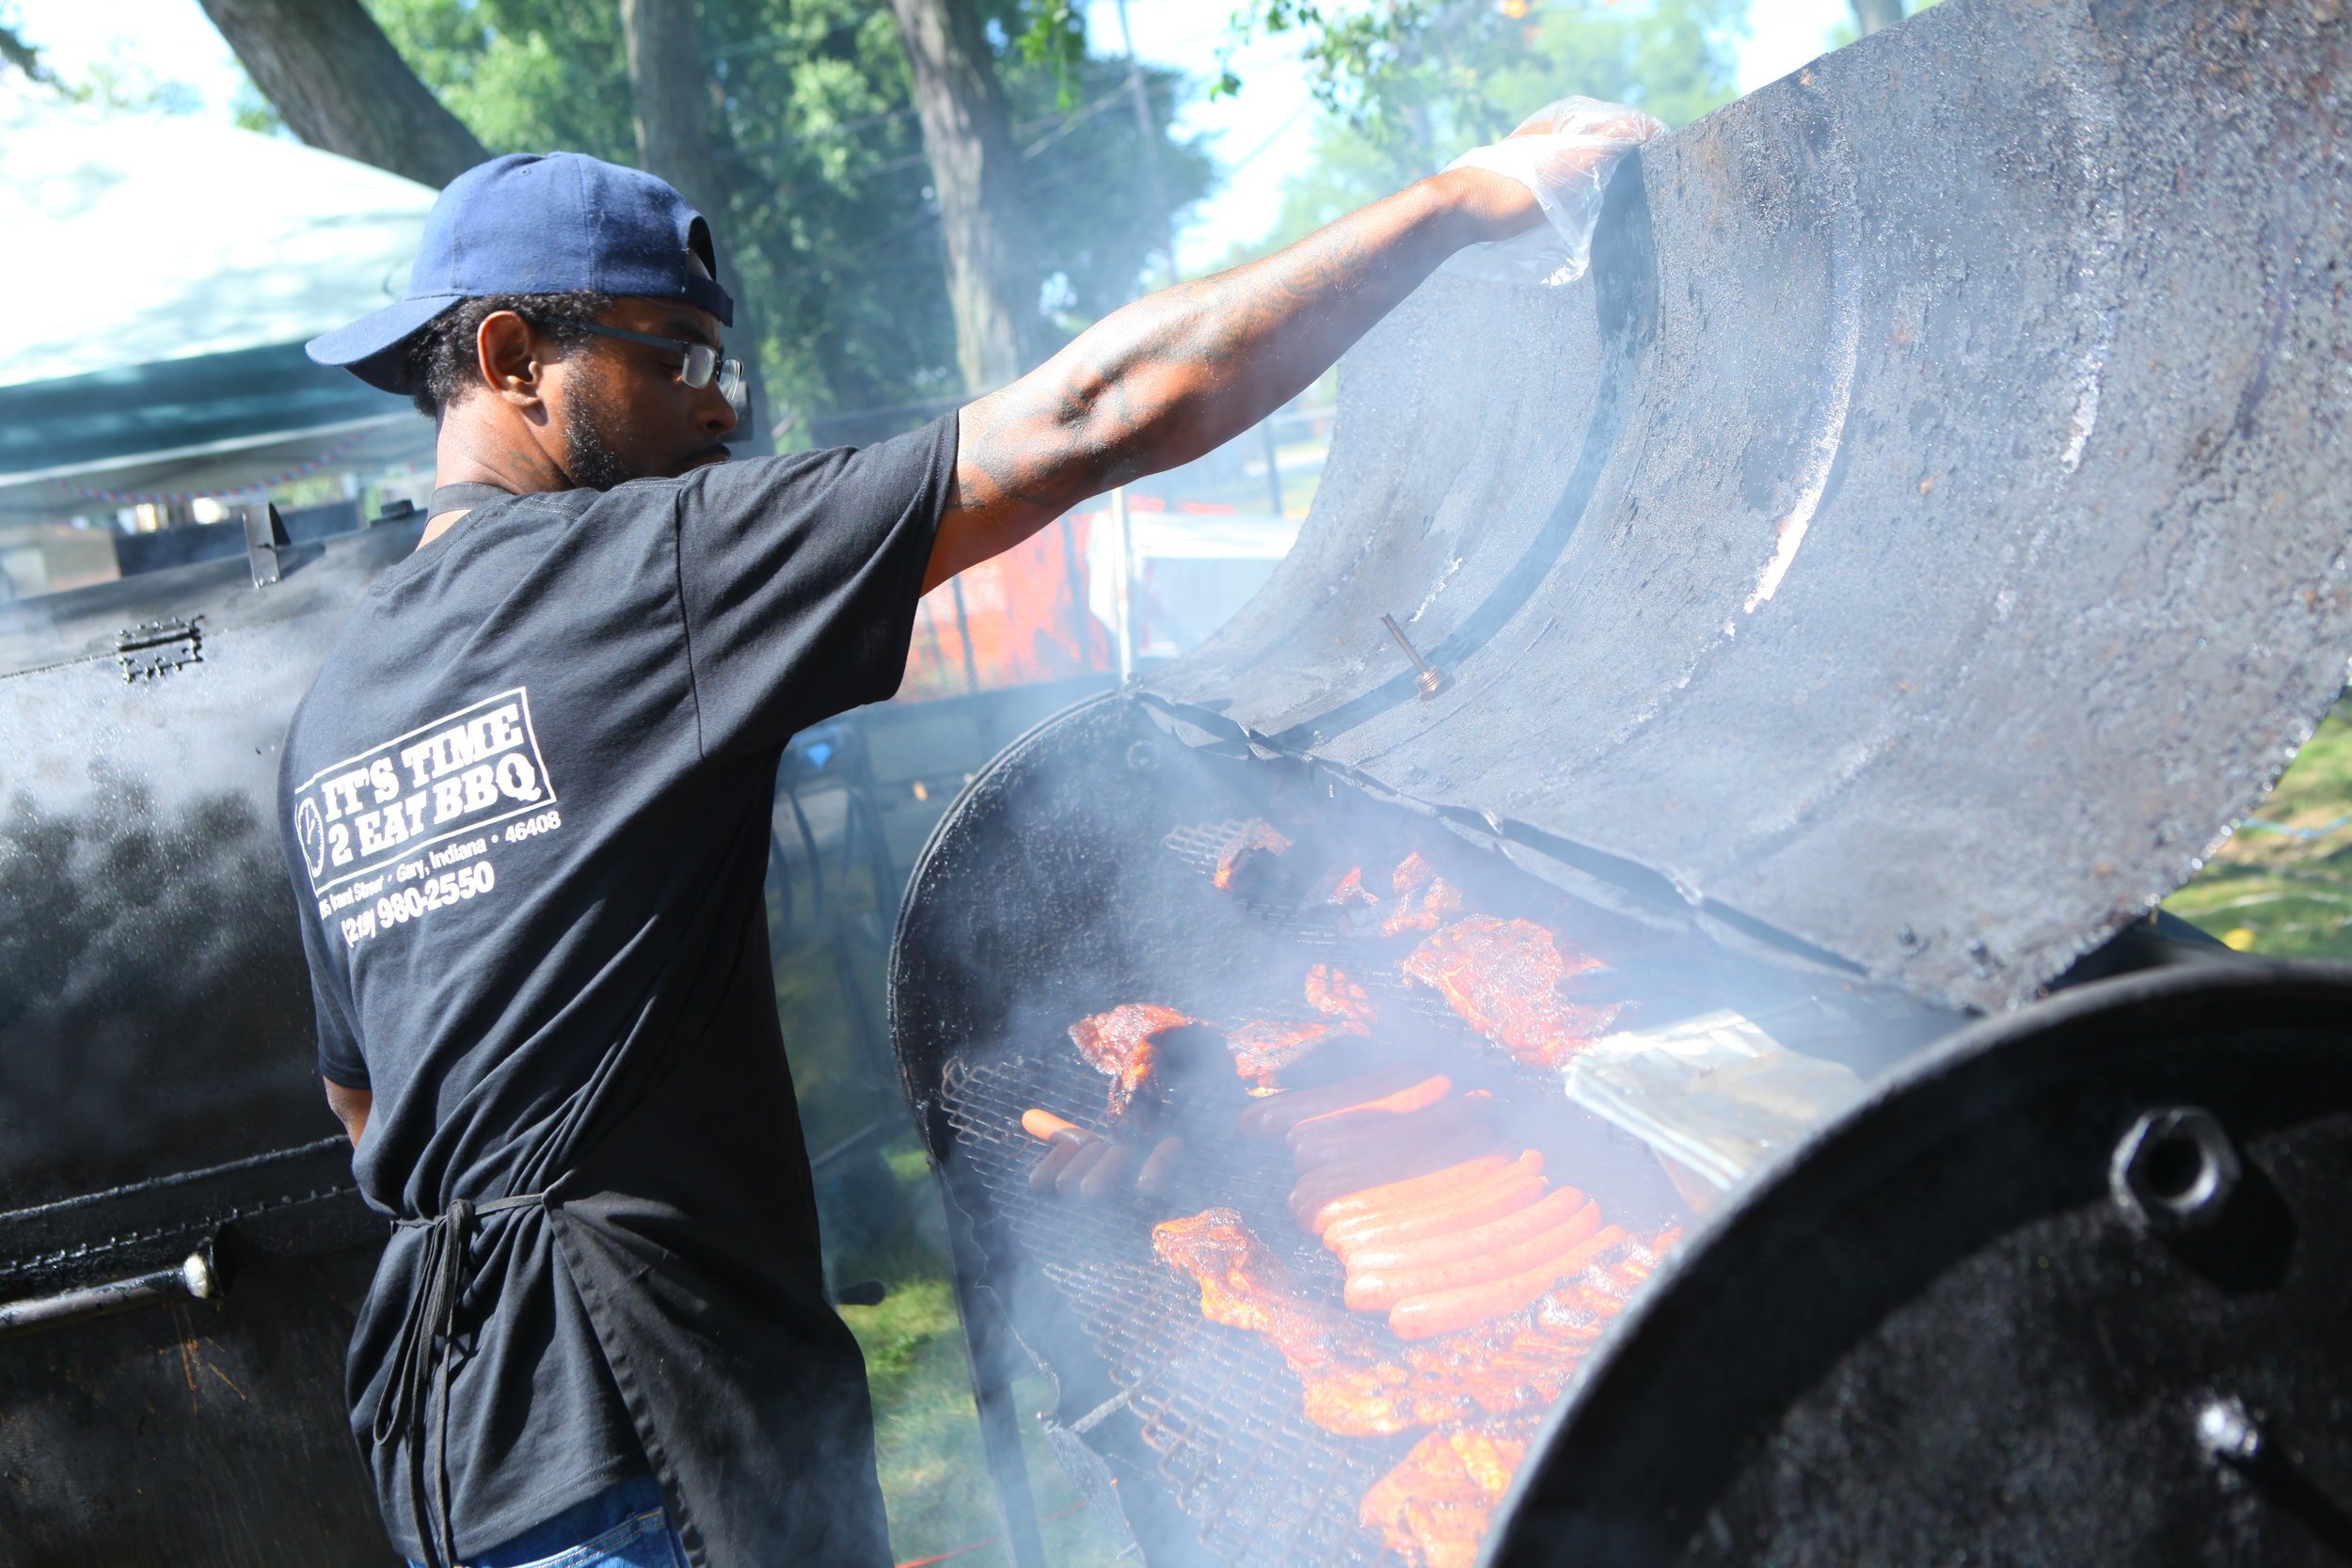 William Campbell, of Gary, checks on barbecue meats in a smoker belonging to It's Time 2 Eat BBQ at the Broad Street Blues Fest in Griffith, Indiana.